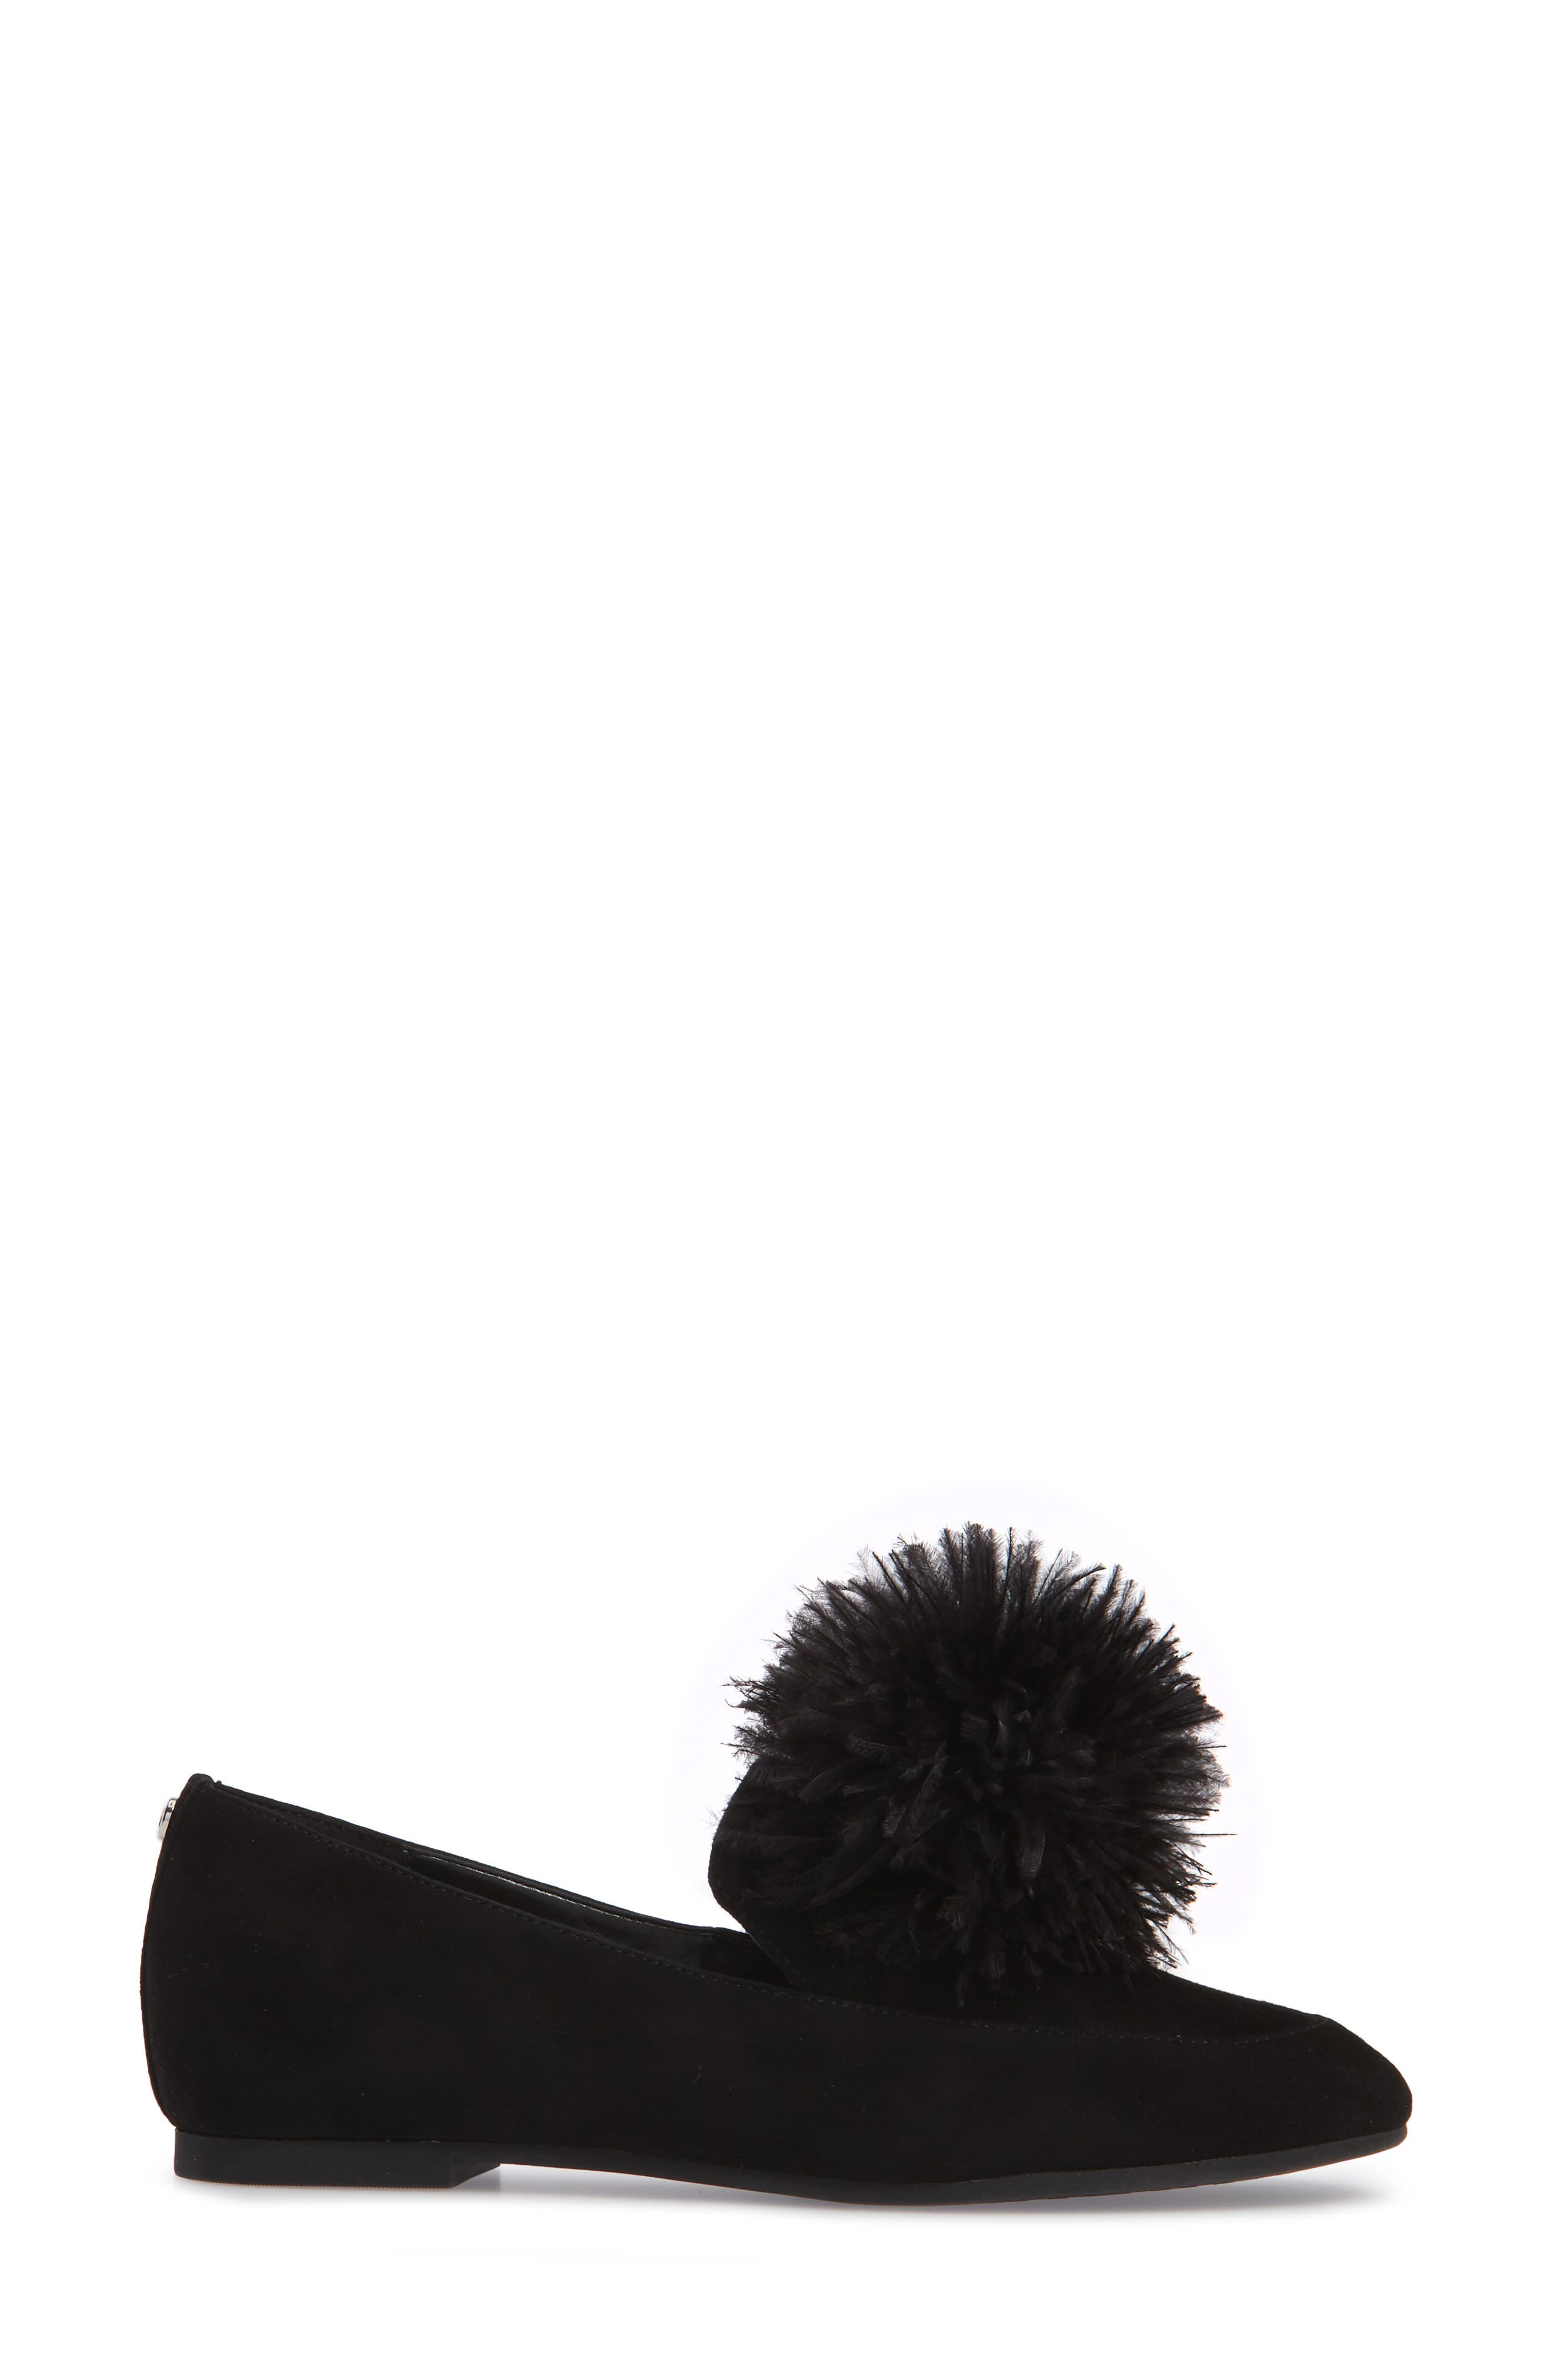 Fara Feather Pom Loafer,                             Alternate thumbnail 5, color,